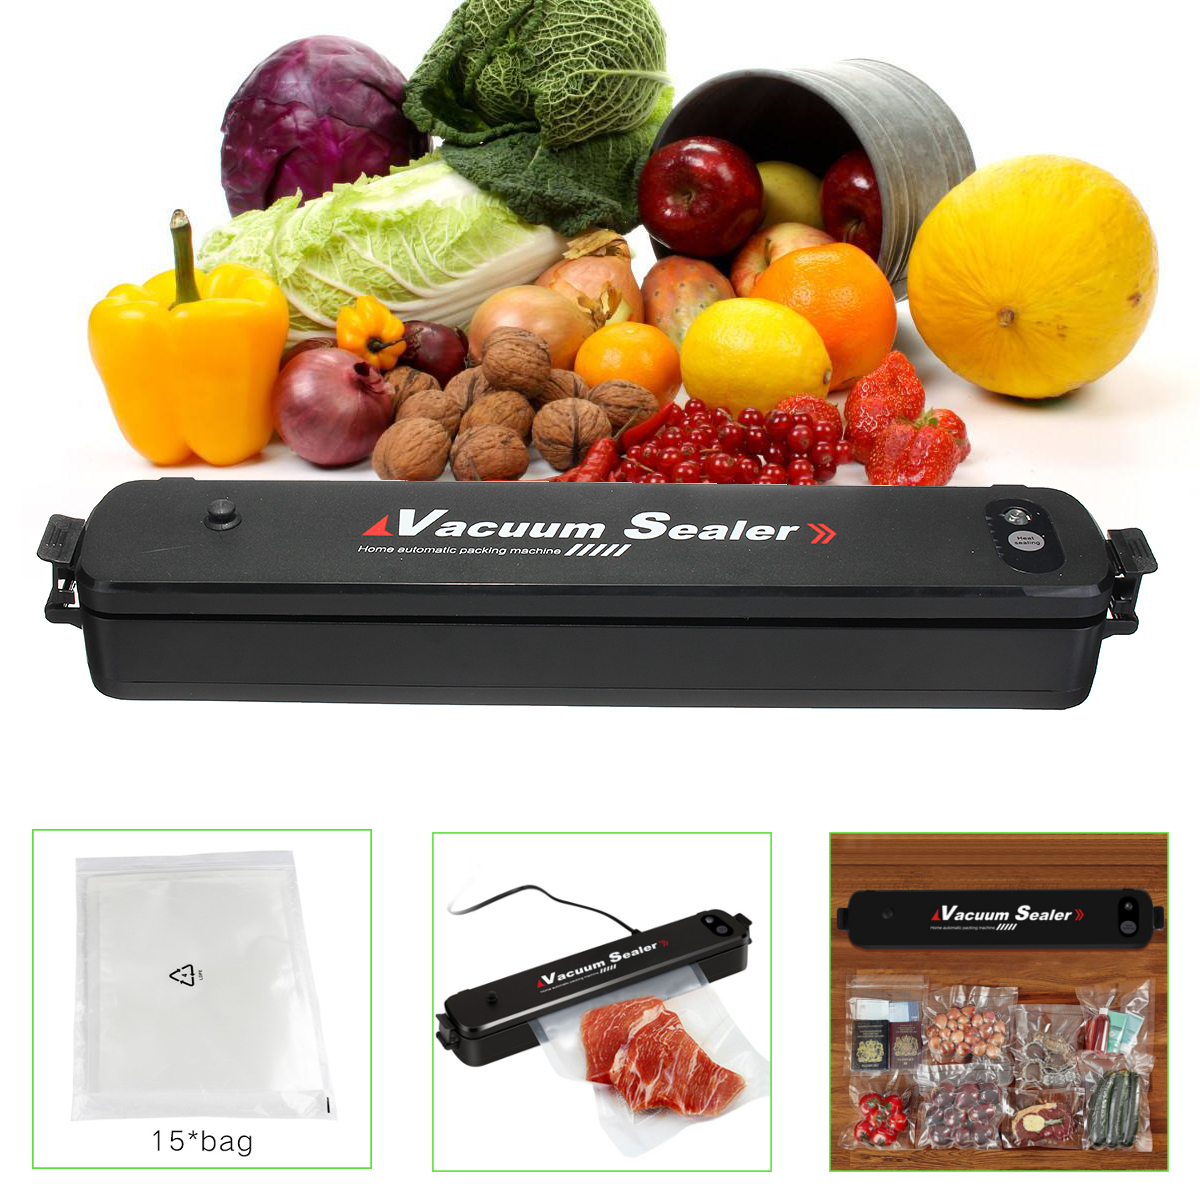 Vacuum Sealer Automatic Vacuum Sealing System Vacuum Sealing Machine for Food Preservation Storage